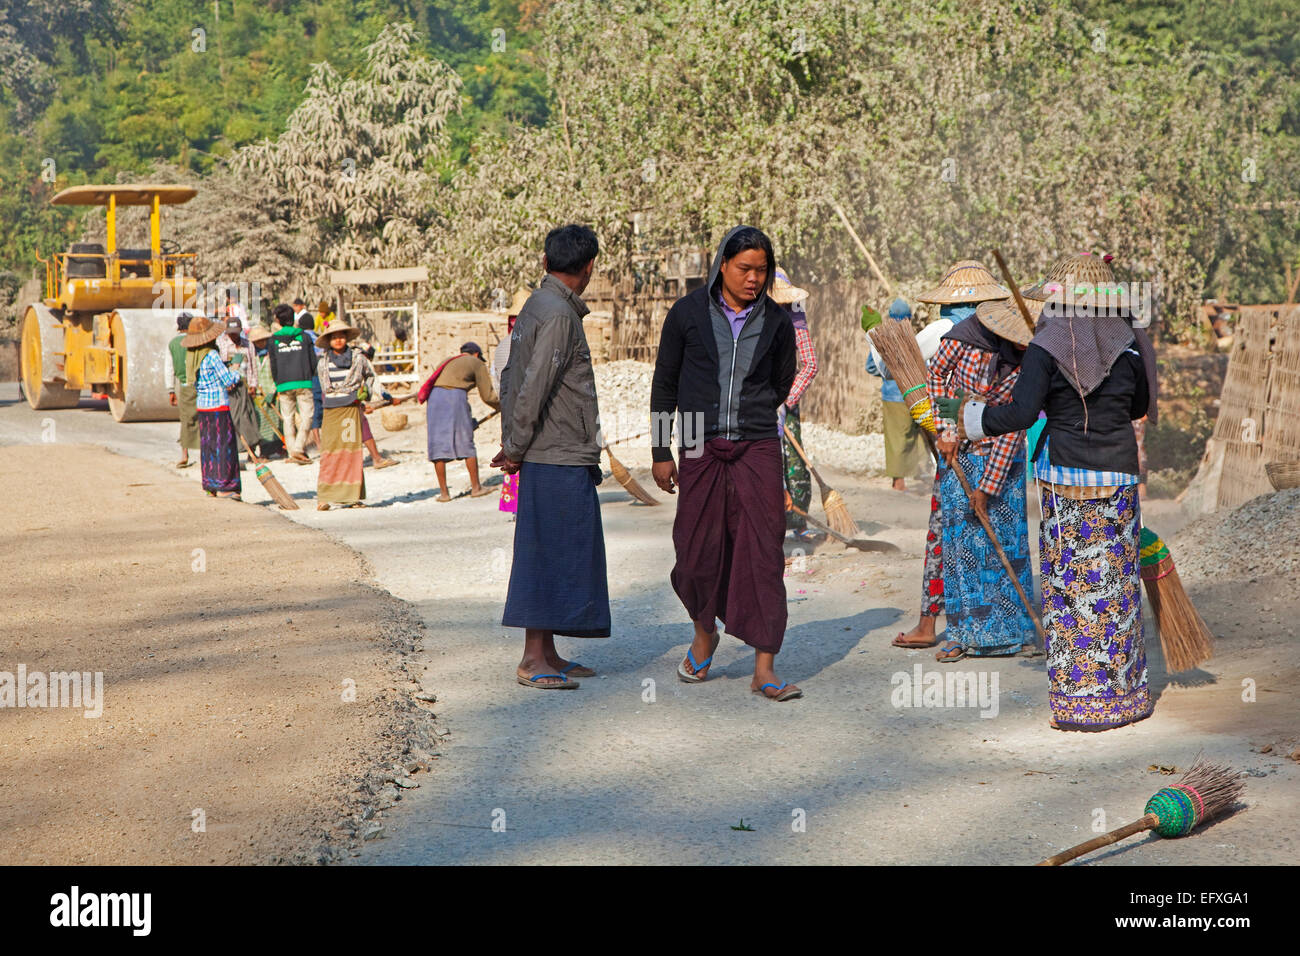 Female road workers, manual labourers sweeping with brooms, Nyaungshwe, Shan State, Myanmar / Burma - Stock Image